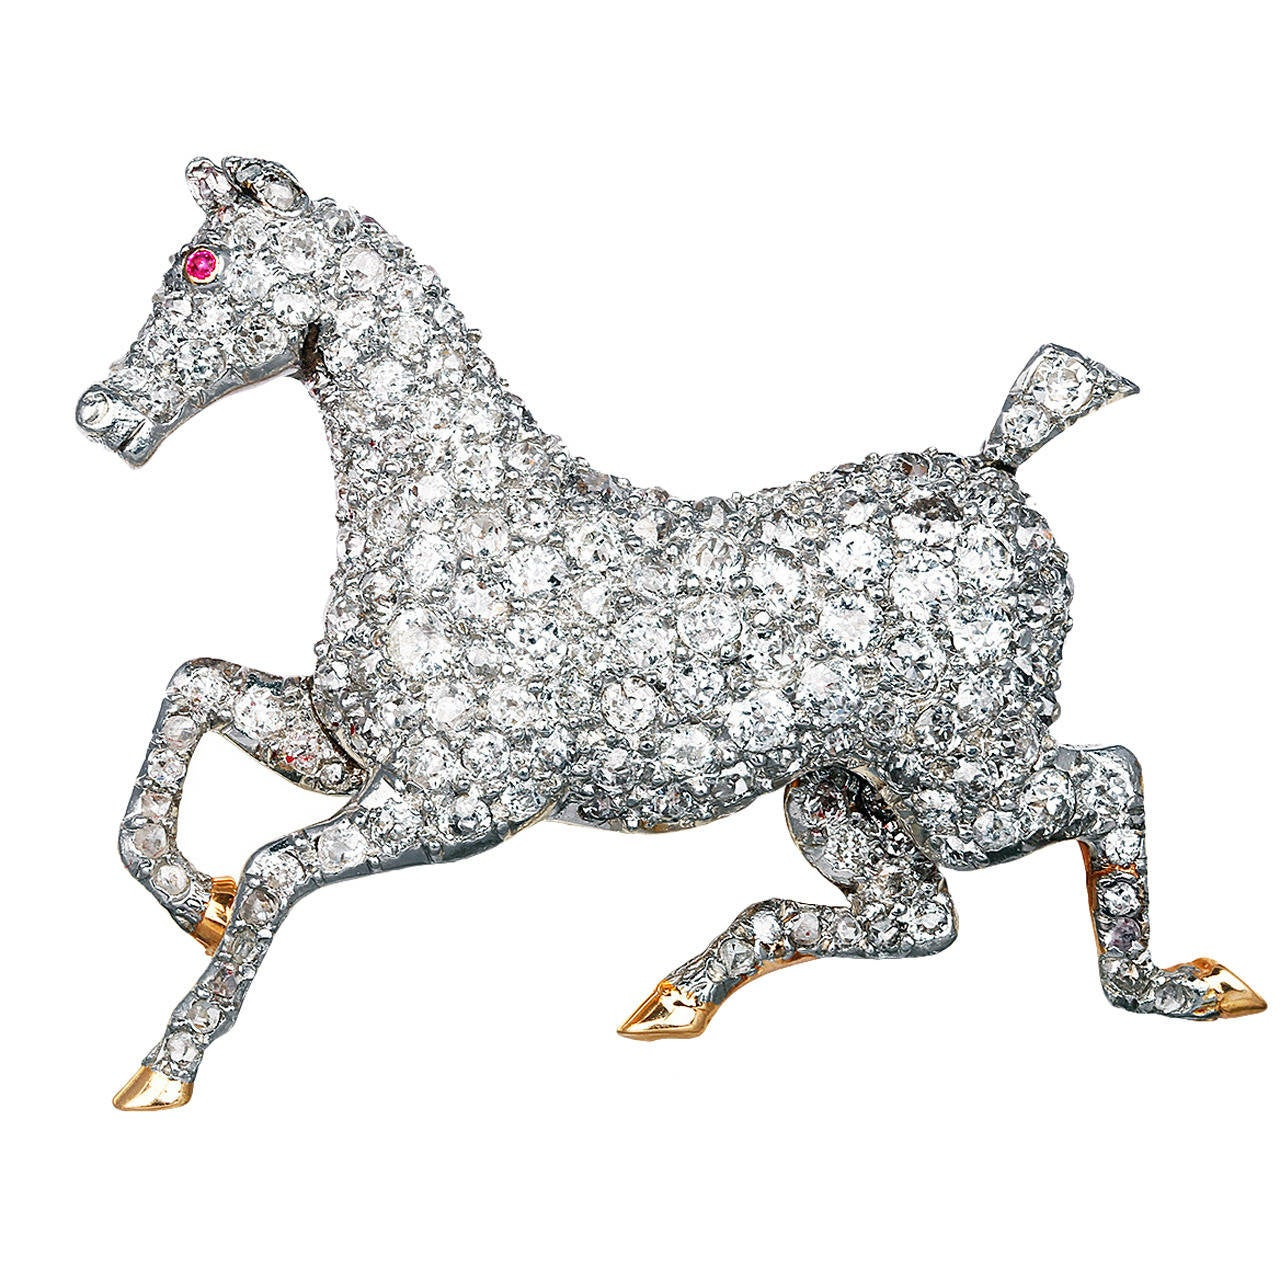 Edwardian Diamond Horse Pin